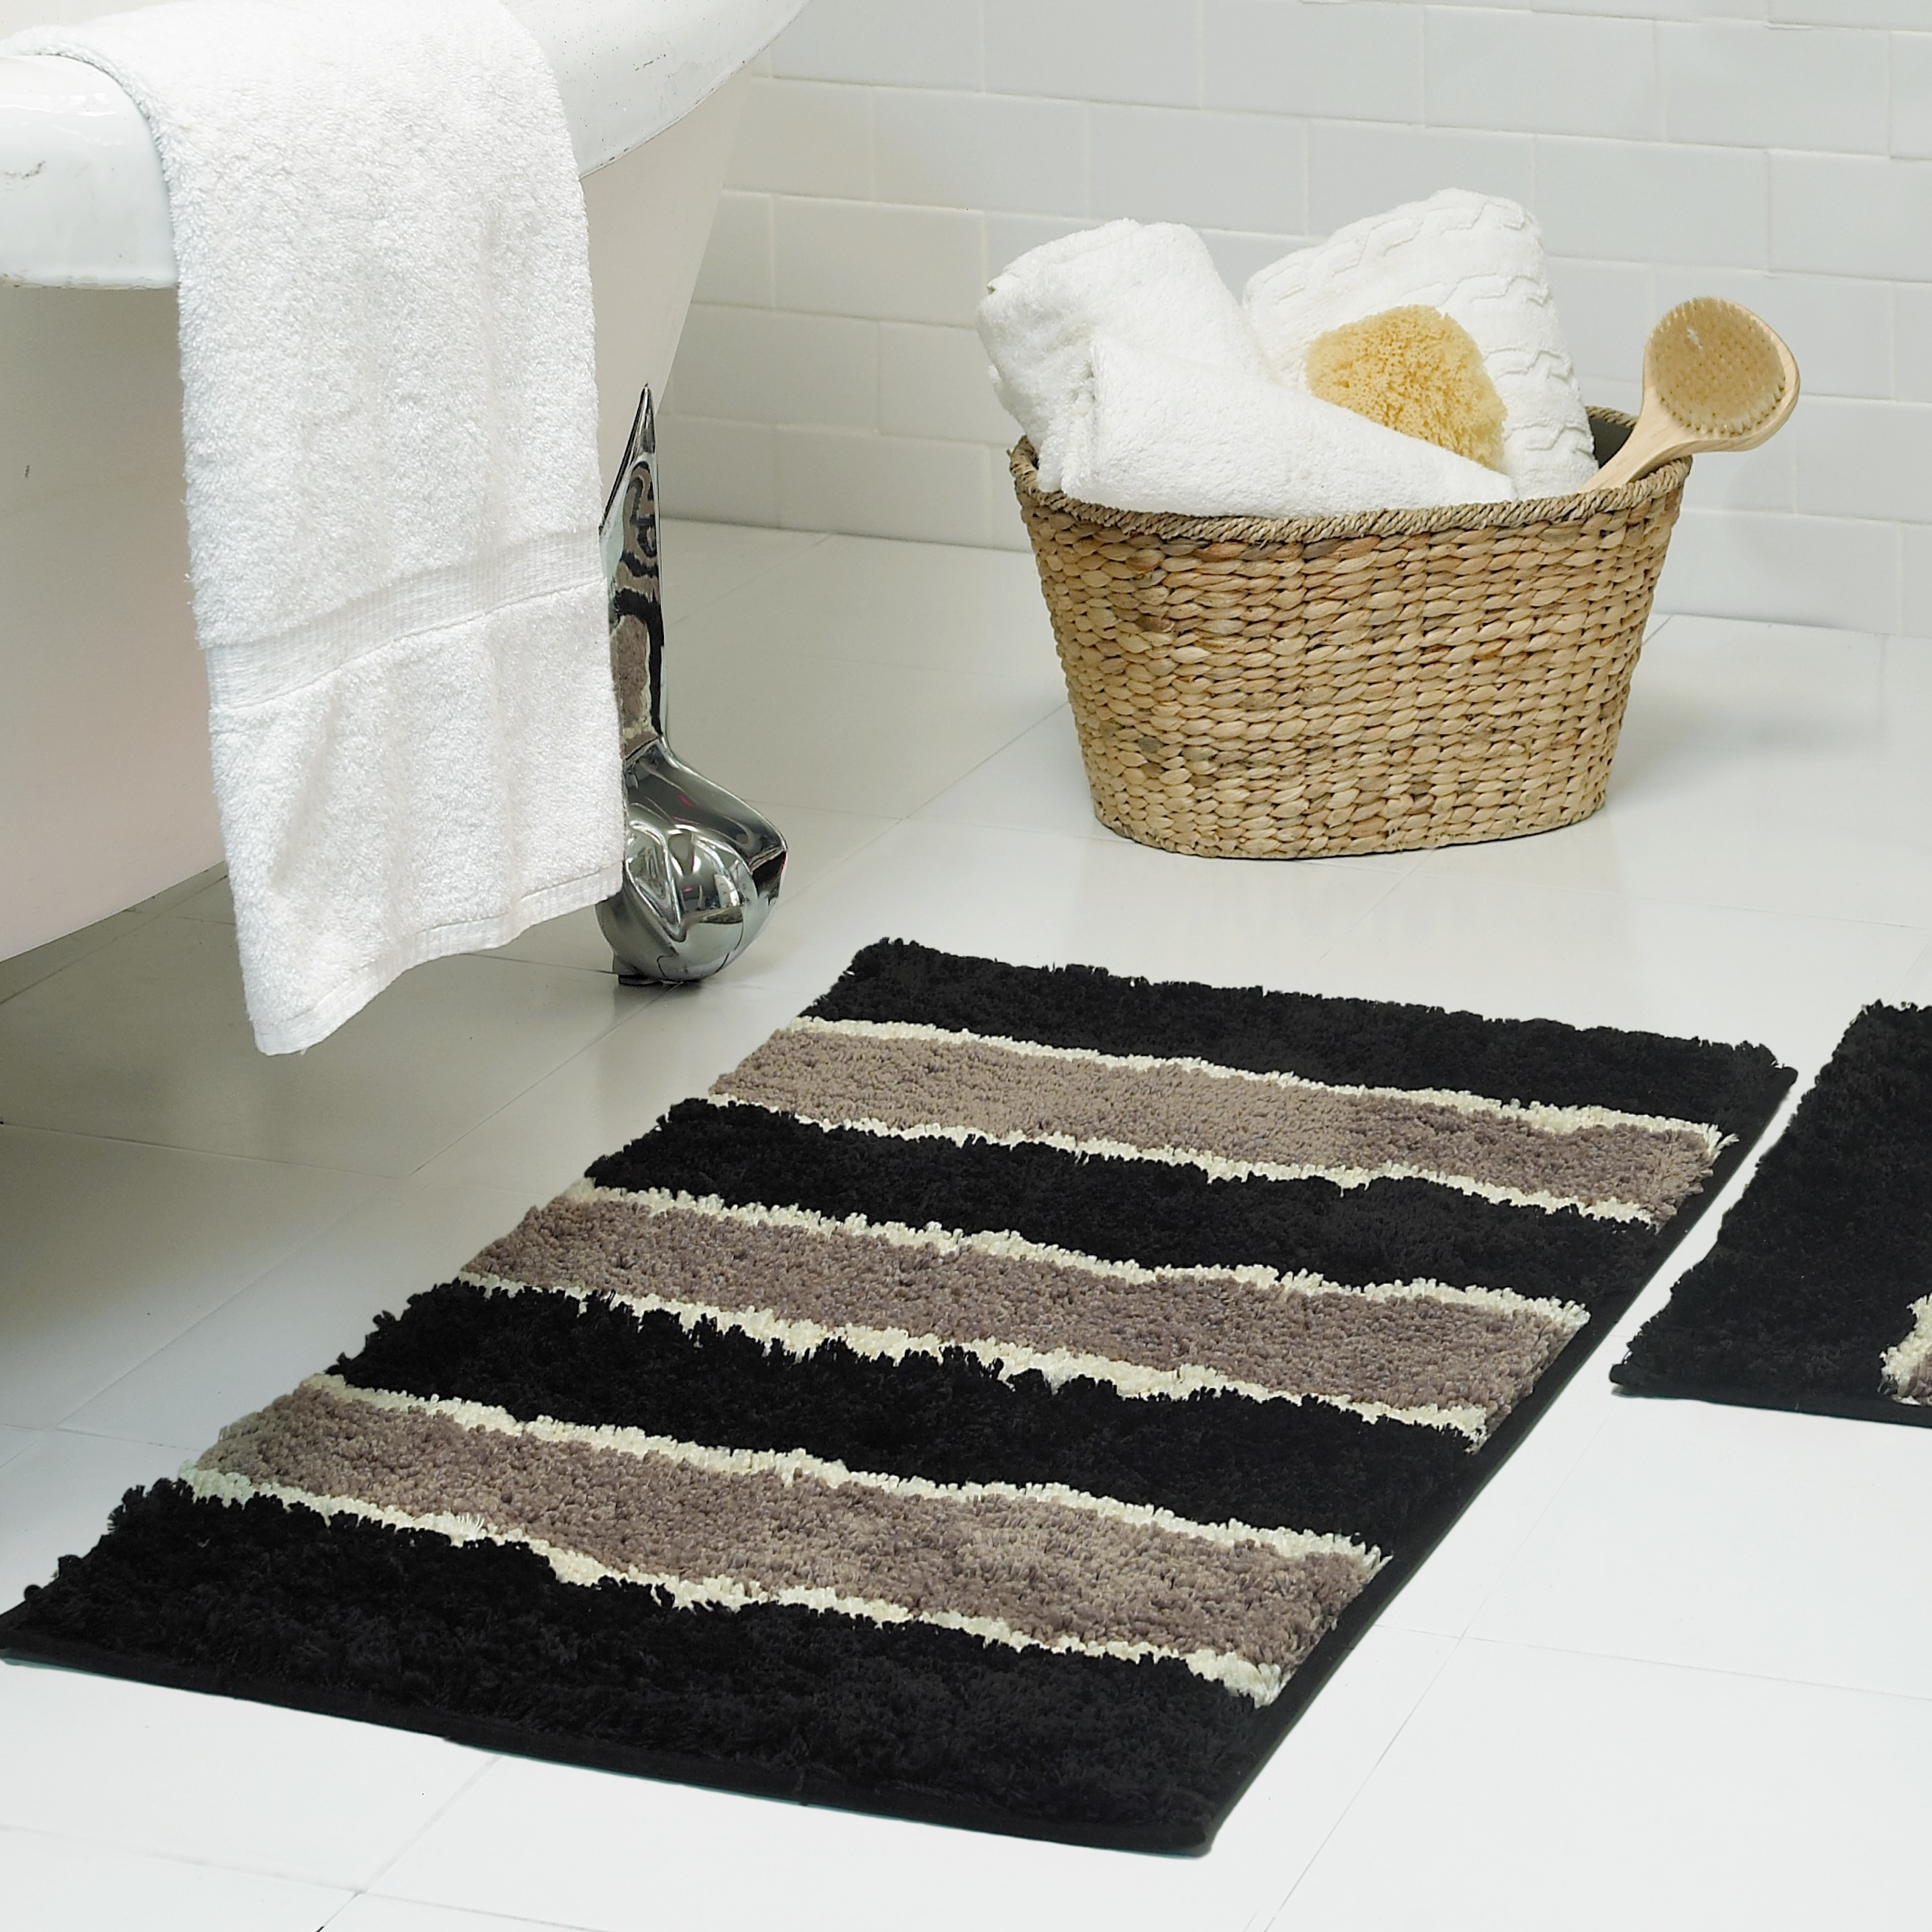 Wall To Wall Bathroom Carpet 5 X 6